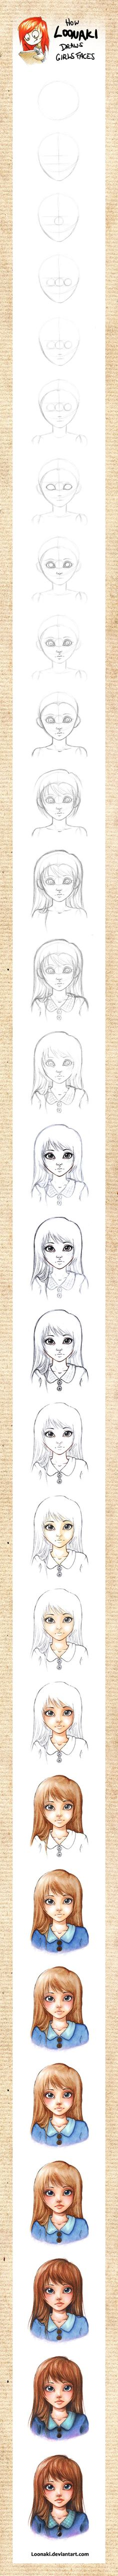 How Loonaki Draws Girls Faces by *Loonaki on deviantART: